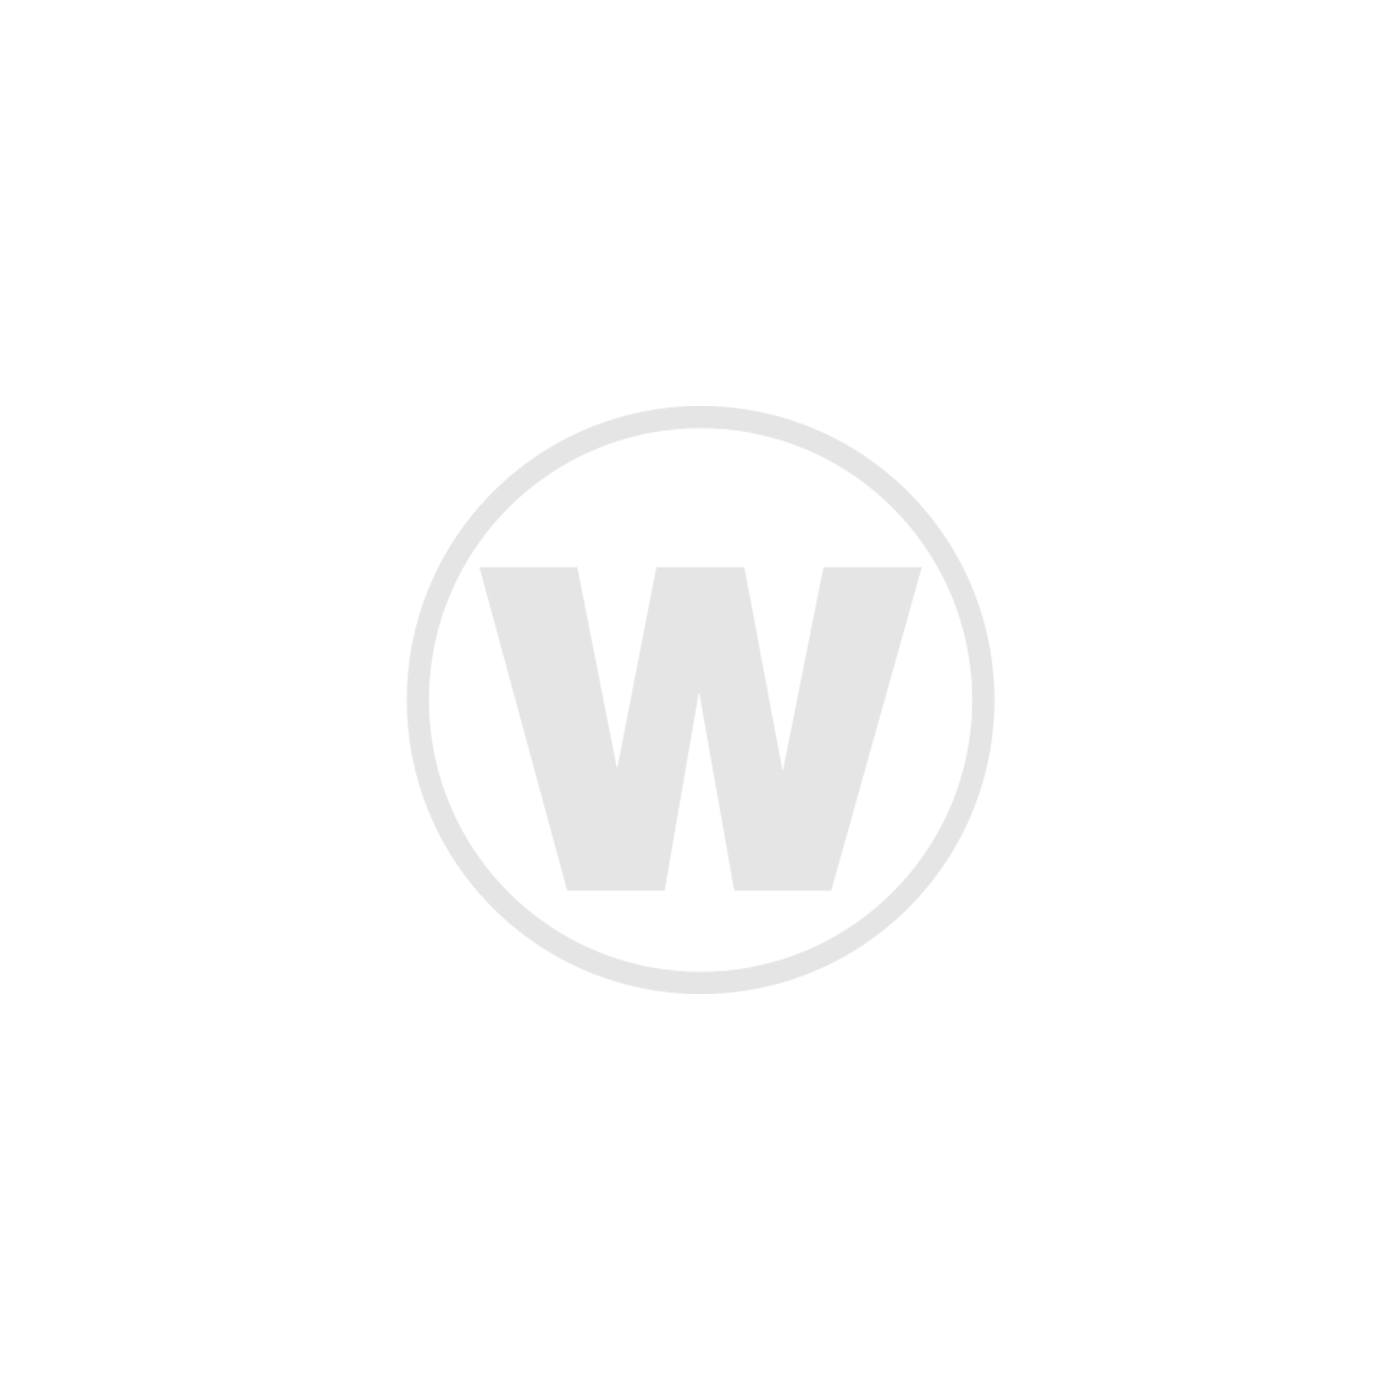 Laphroaig 1987 33 Year Old The Ian Hunter Story Book 3: Source Protector